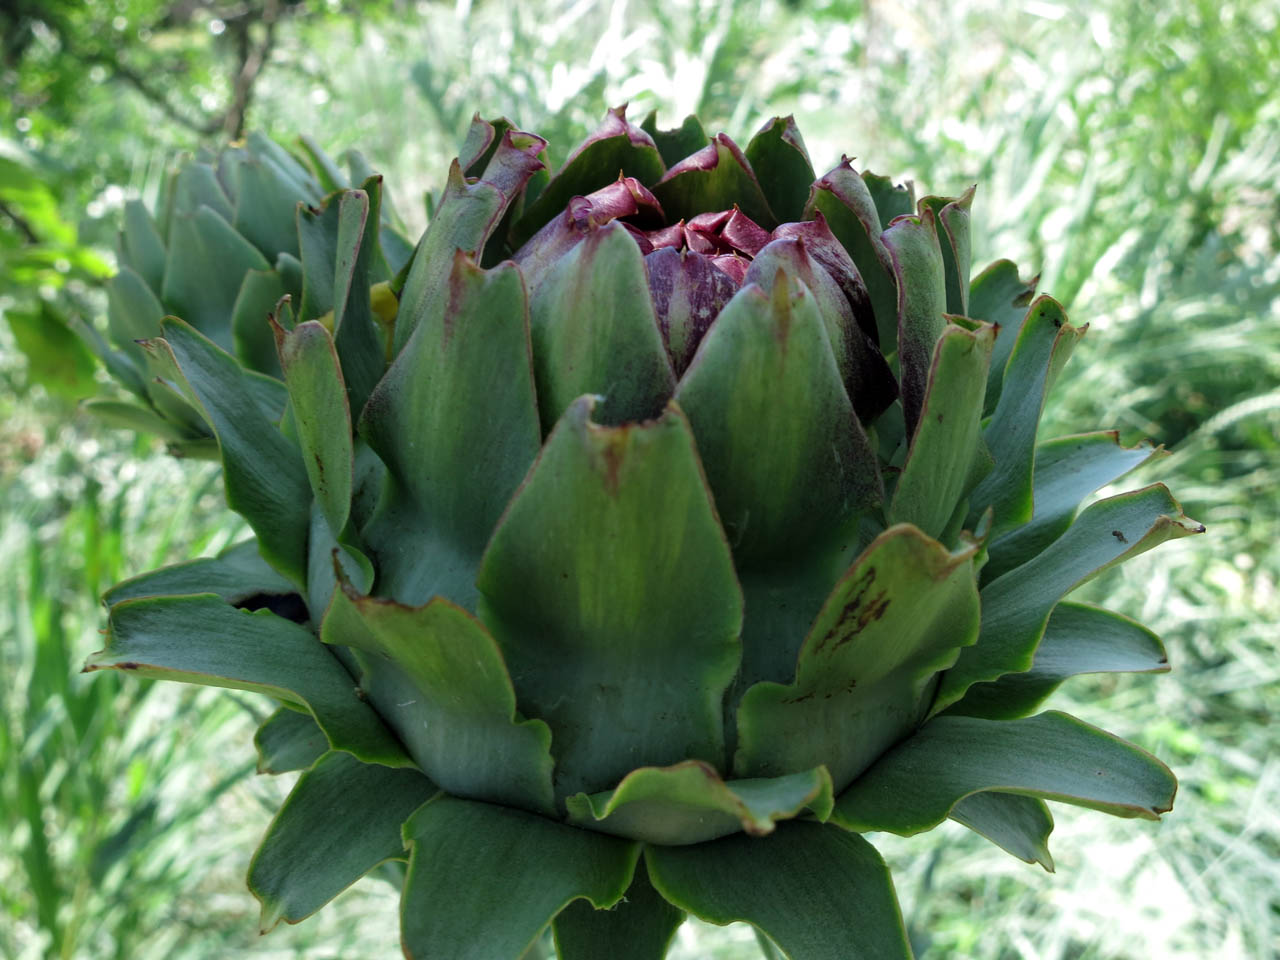 My first ever artichoke sighting (!) - Mazzorbo